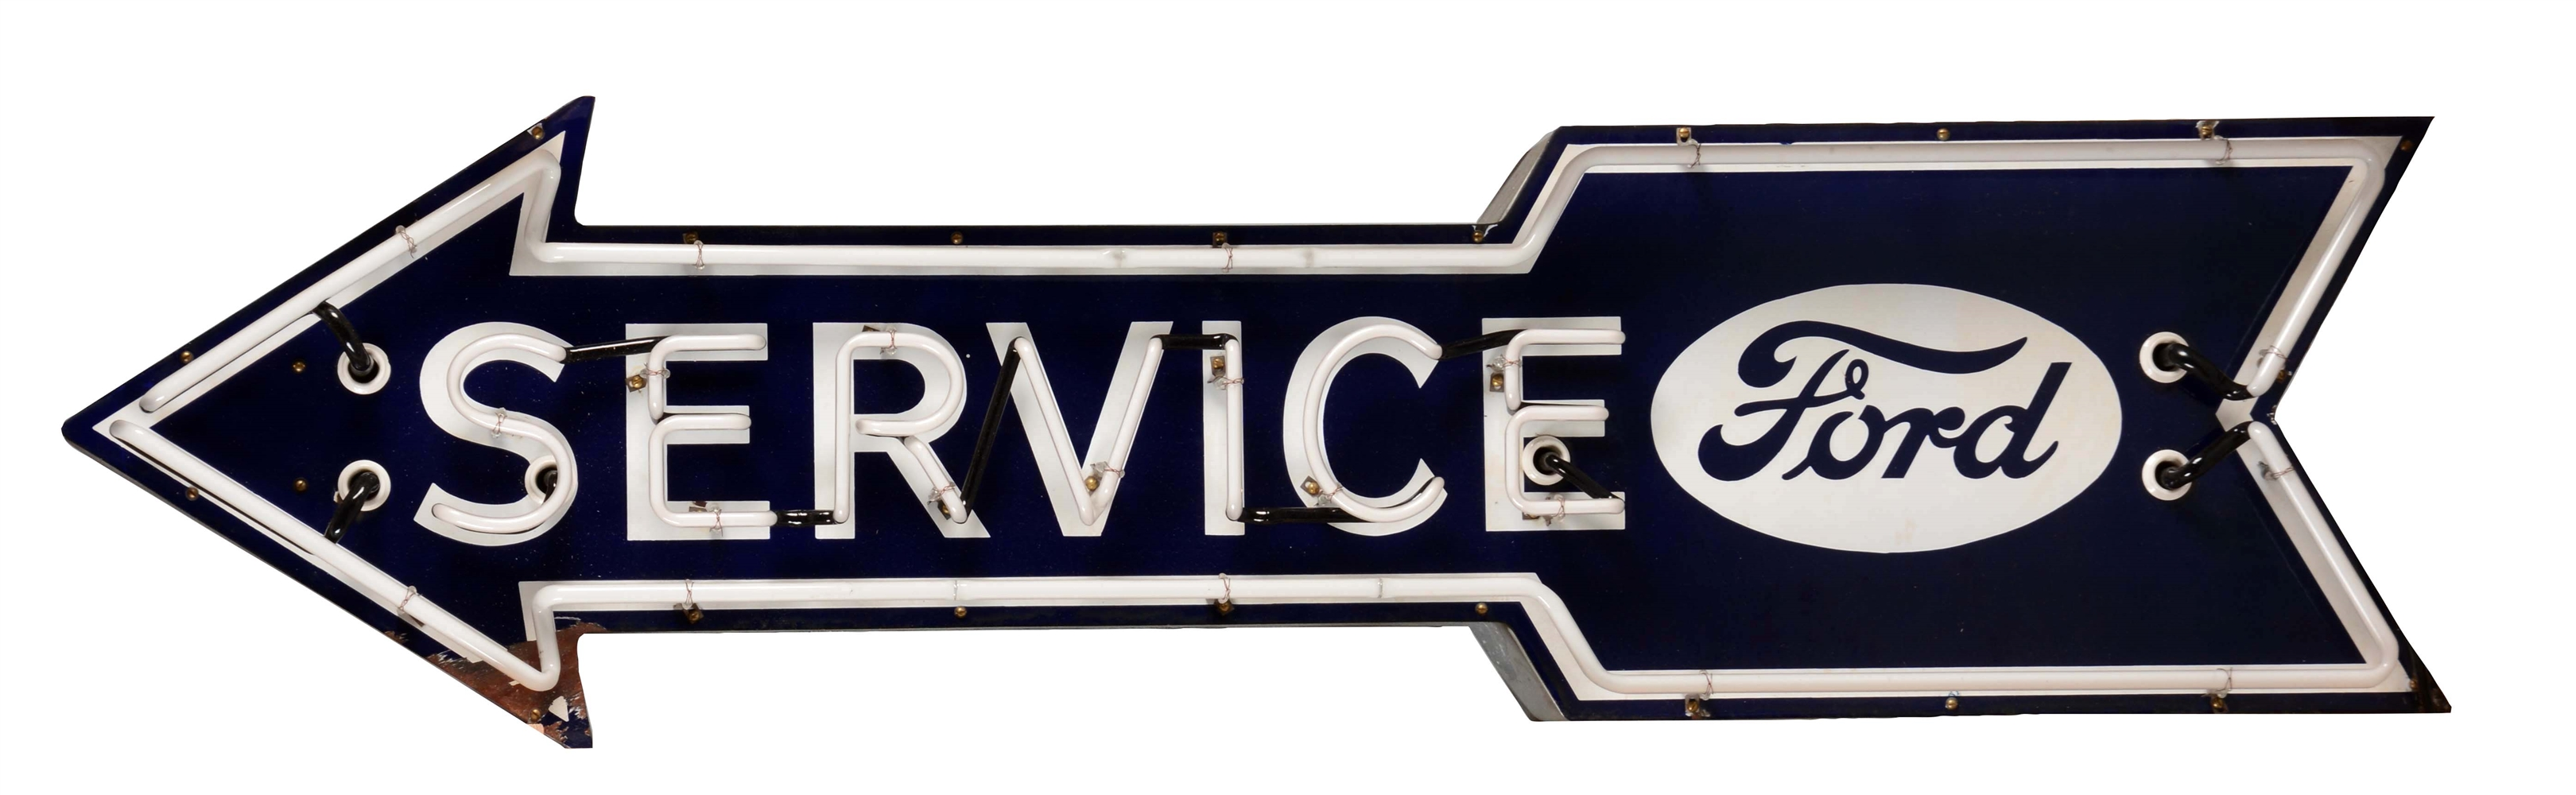 Ford Service Porcelain Neon Arrow Sign.